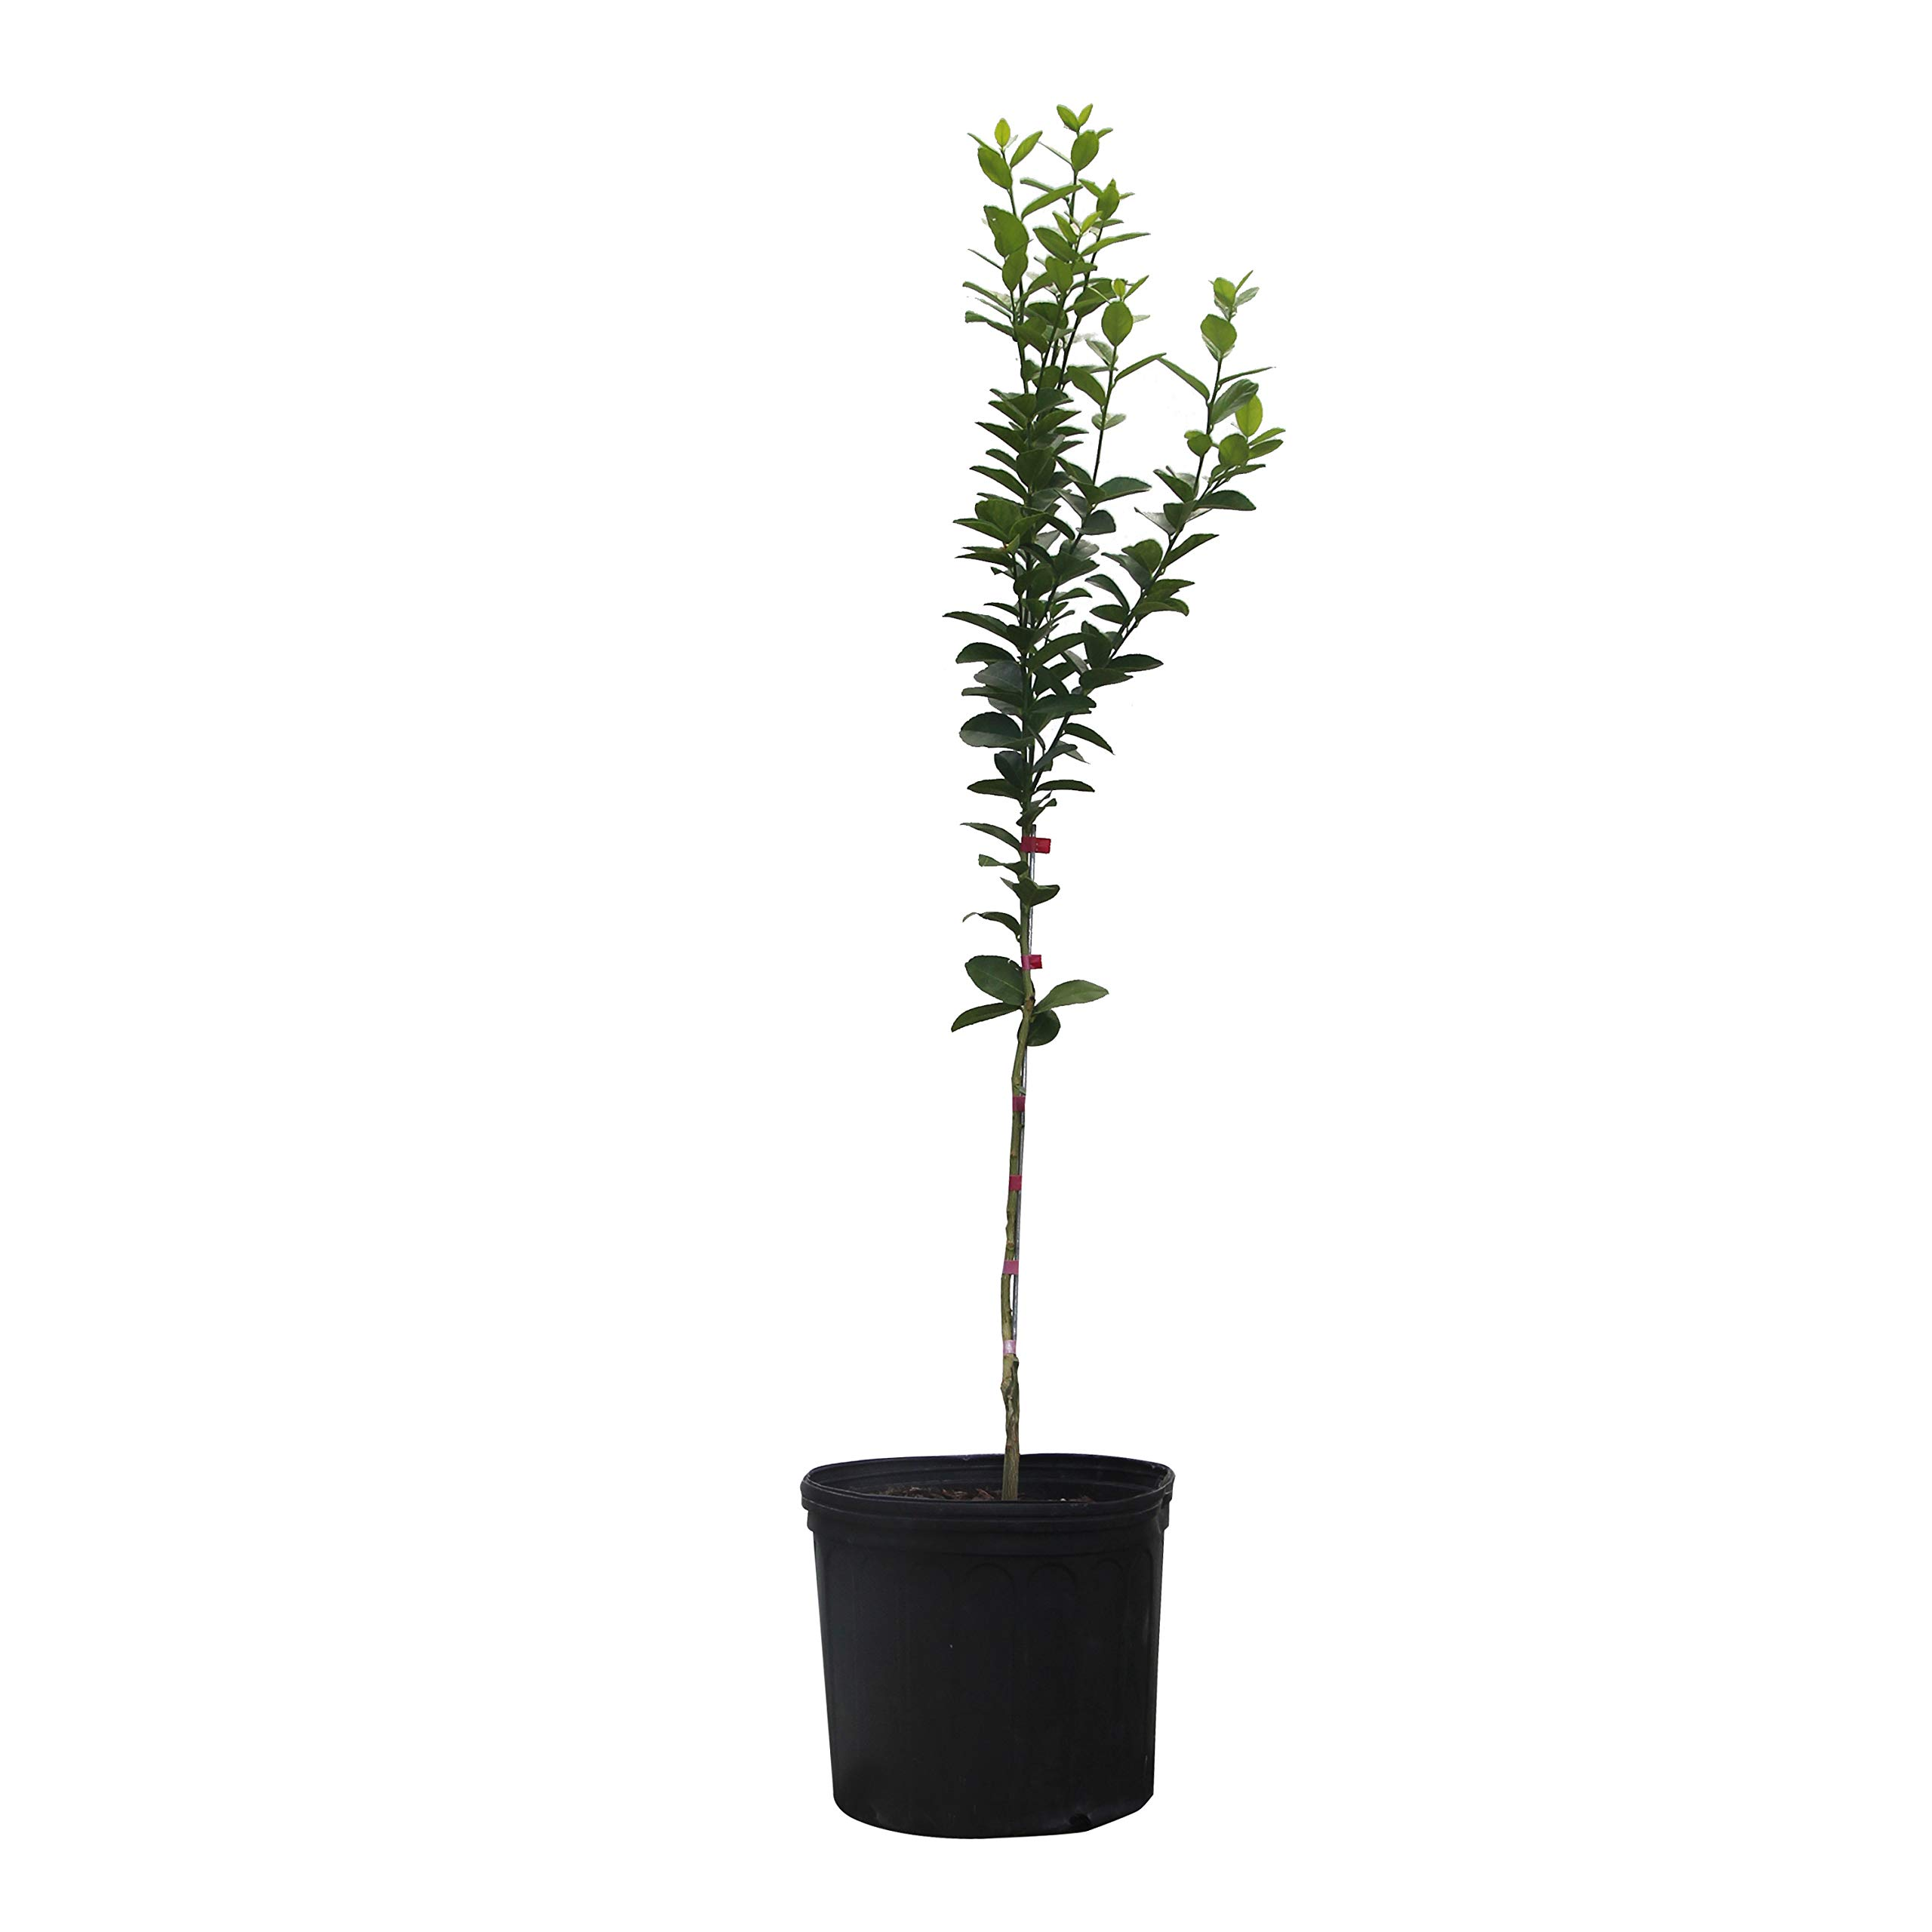 Key Lime Tree - Dwarf Fruit Trees - Indoor/Outdoor Live Potted Citrus Tree - 2-3 ft. Tall Trees - Cannot Ship to FL, CA, TX, LA or AZ